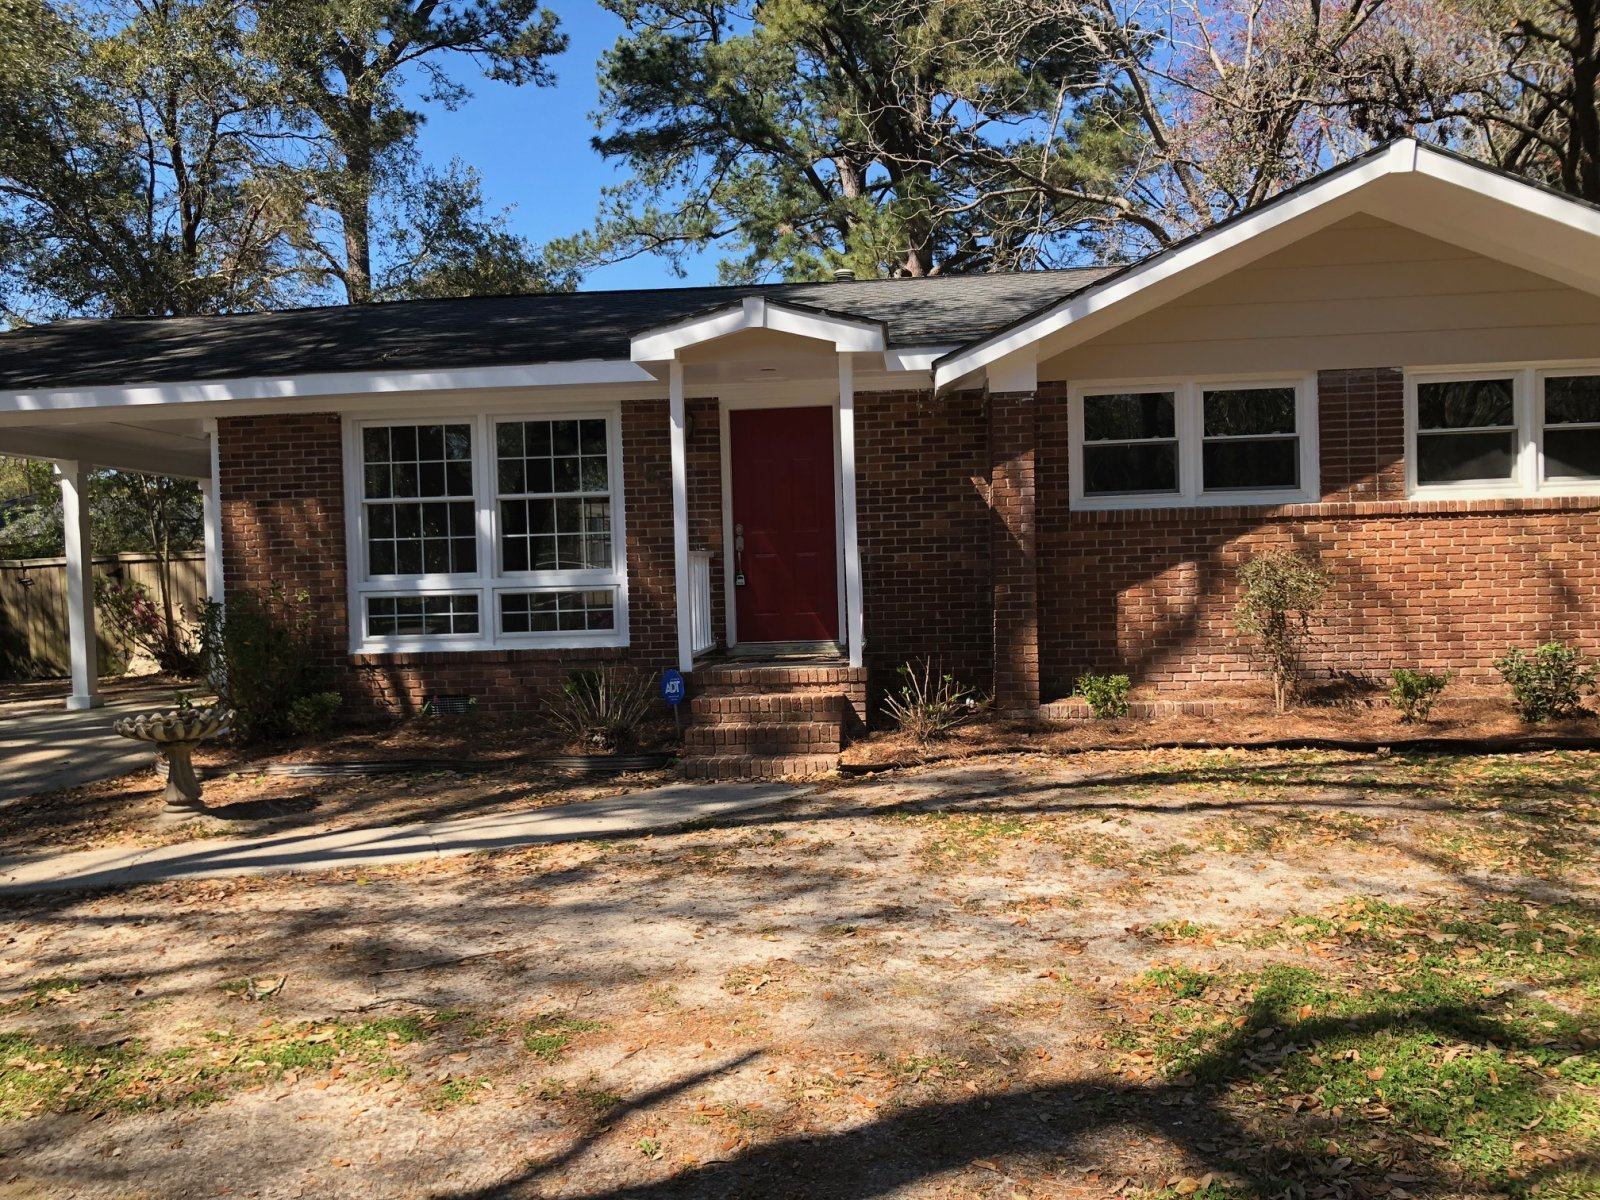 charleston sc rent to own house 10 minutes from downtown